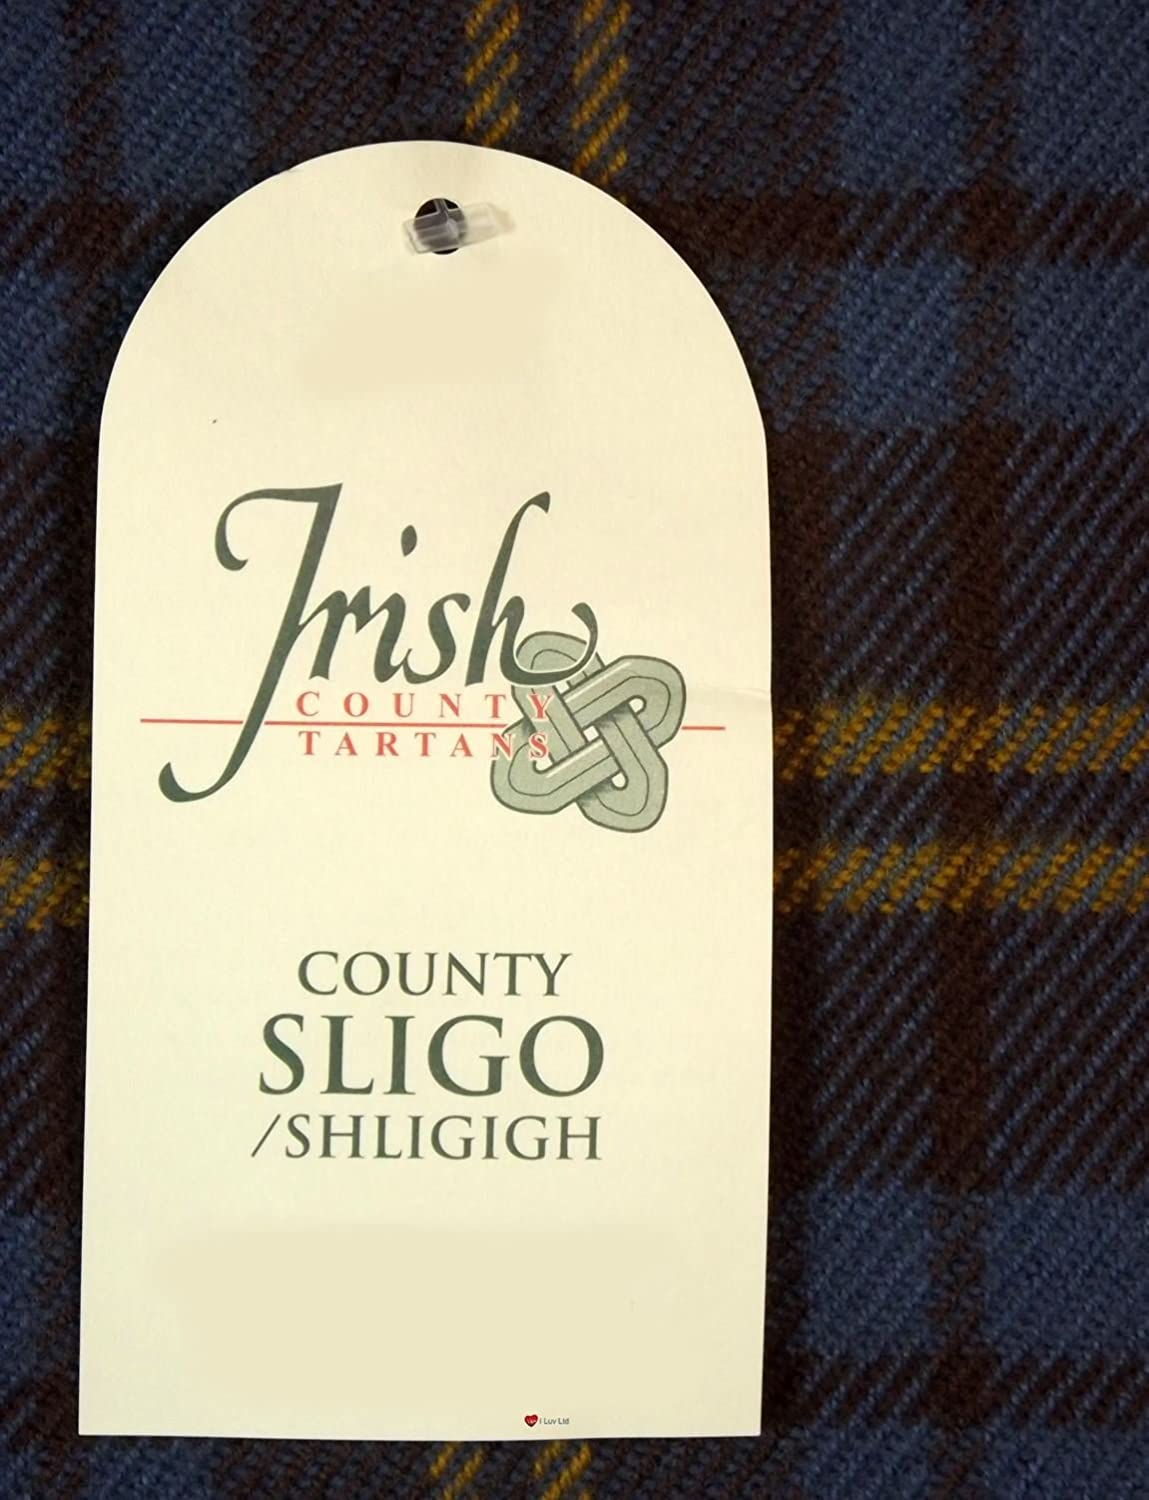 100/% Lambswool Scarf in Irish County Sligo Tartan